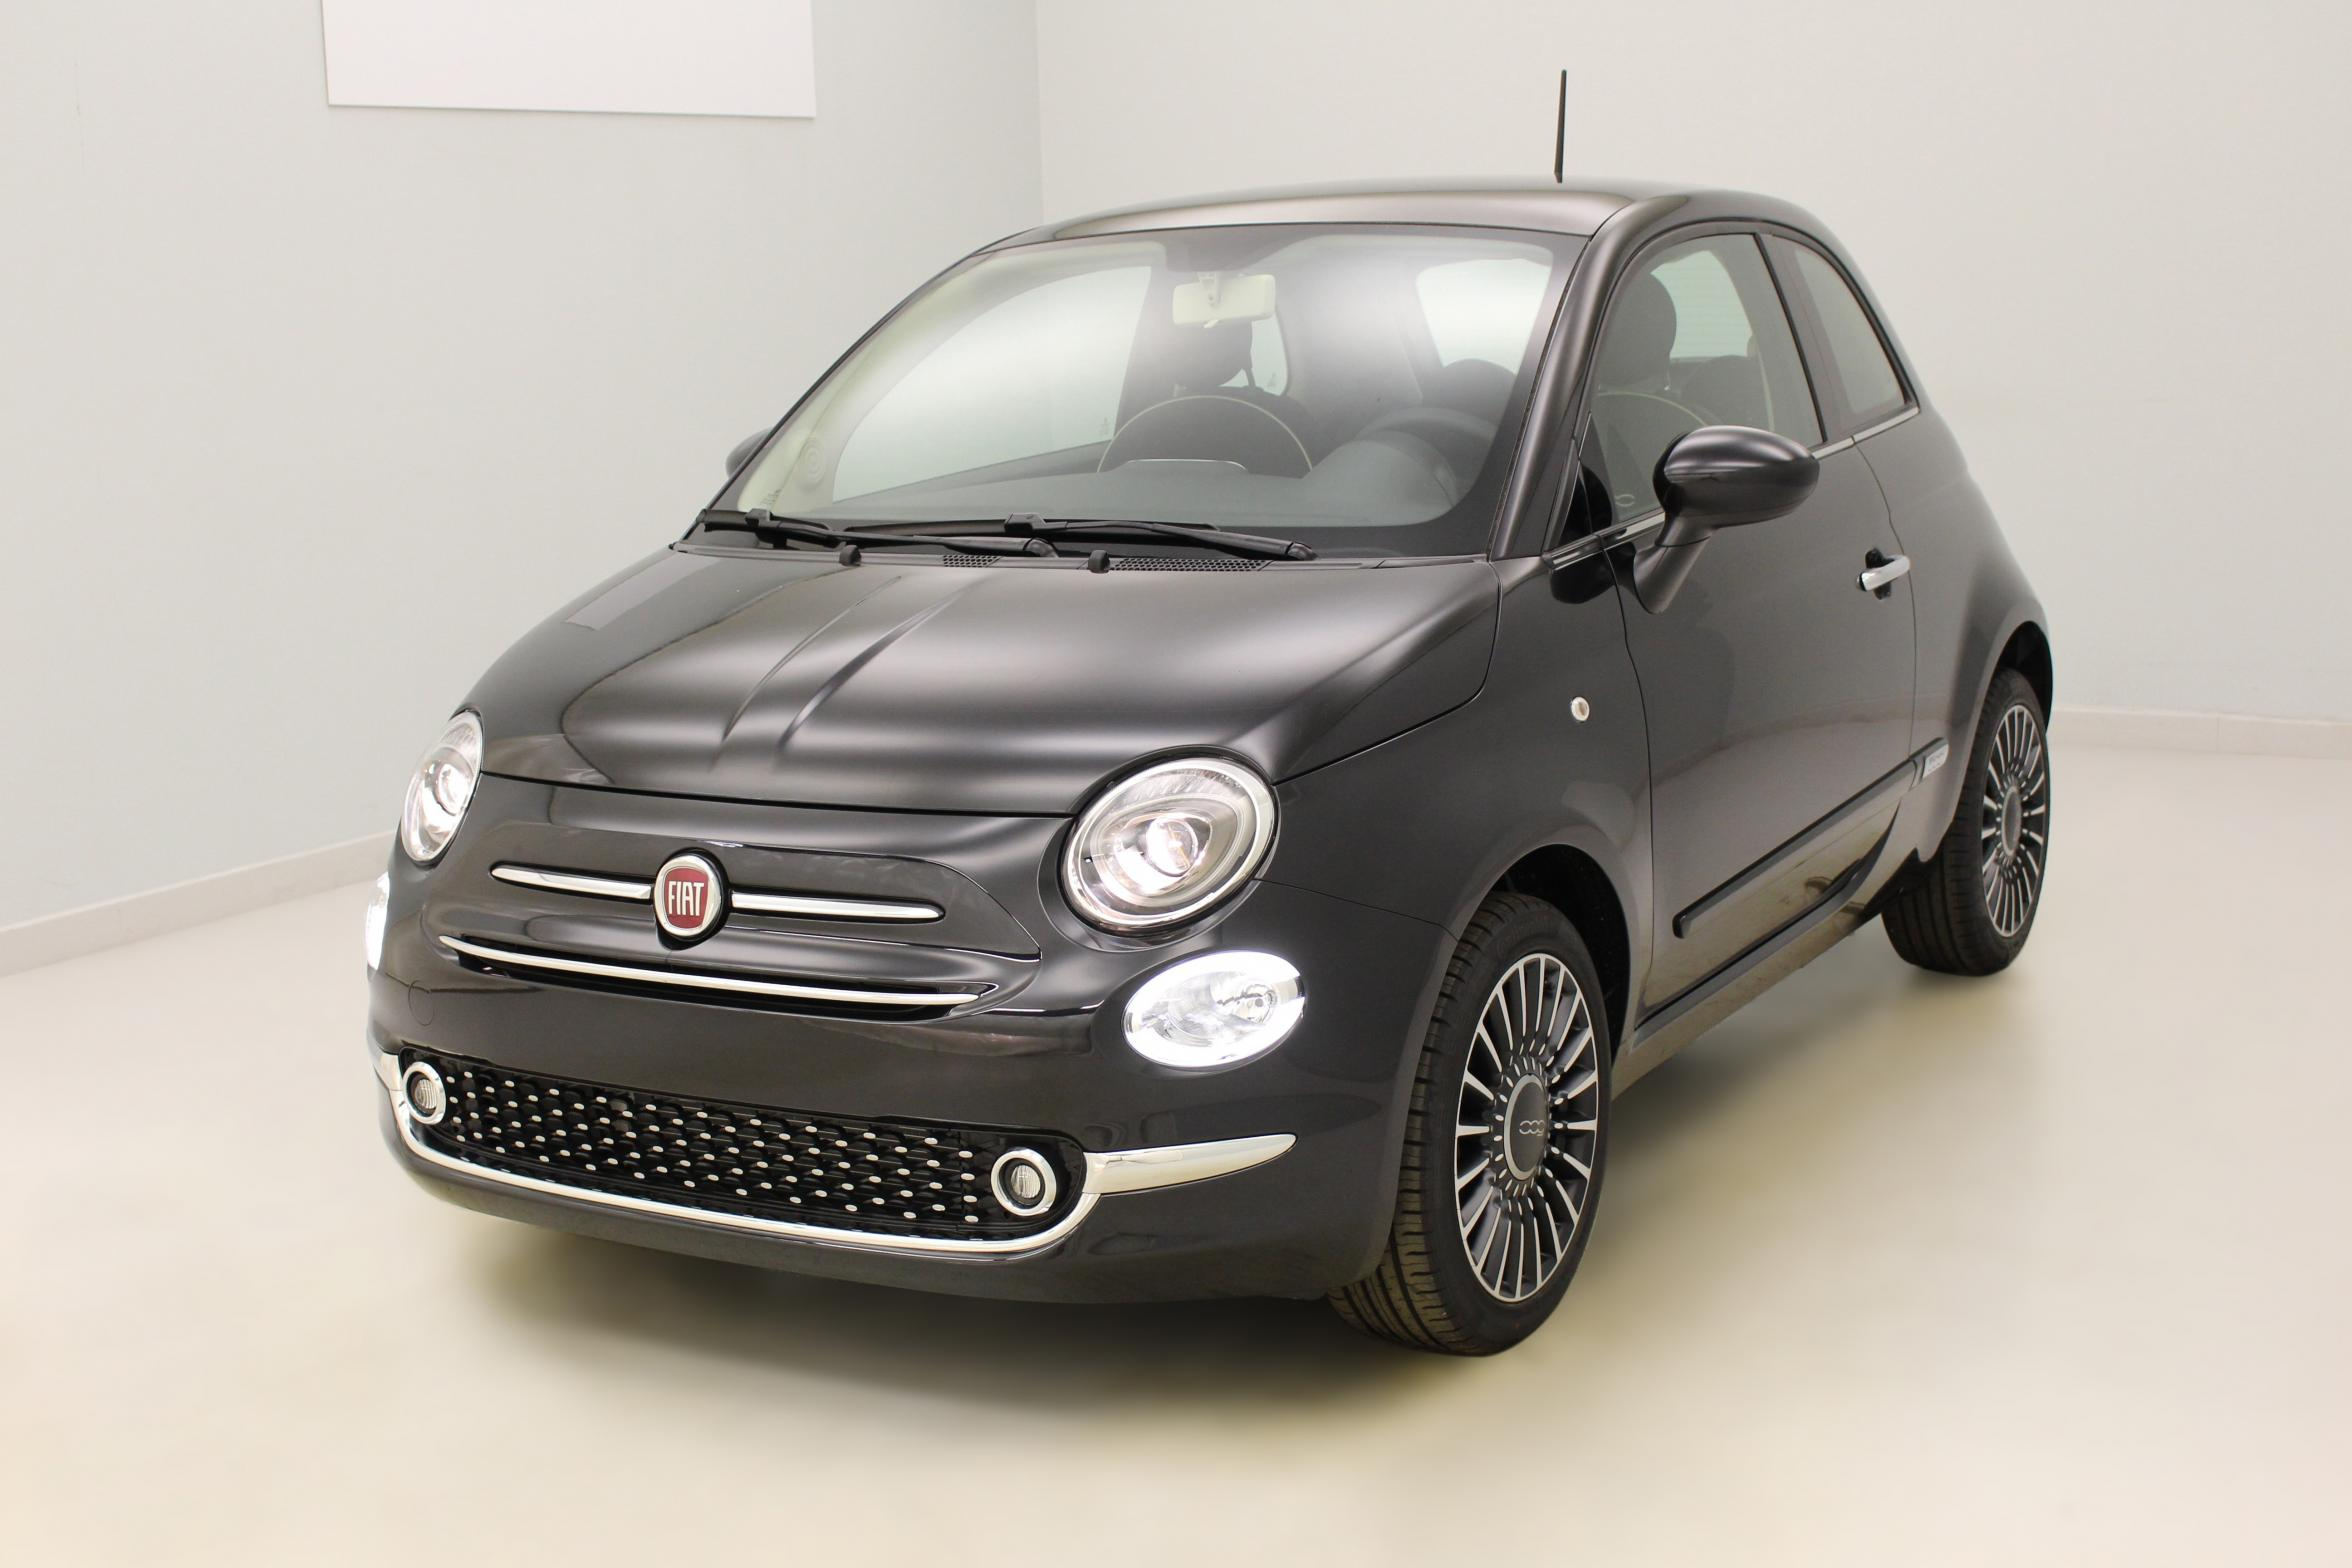 "FIAT 500 1.2 69 ch Popstar Dualogic Crossover Black + Jantes alliage 16""New Club avec options"